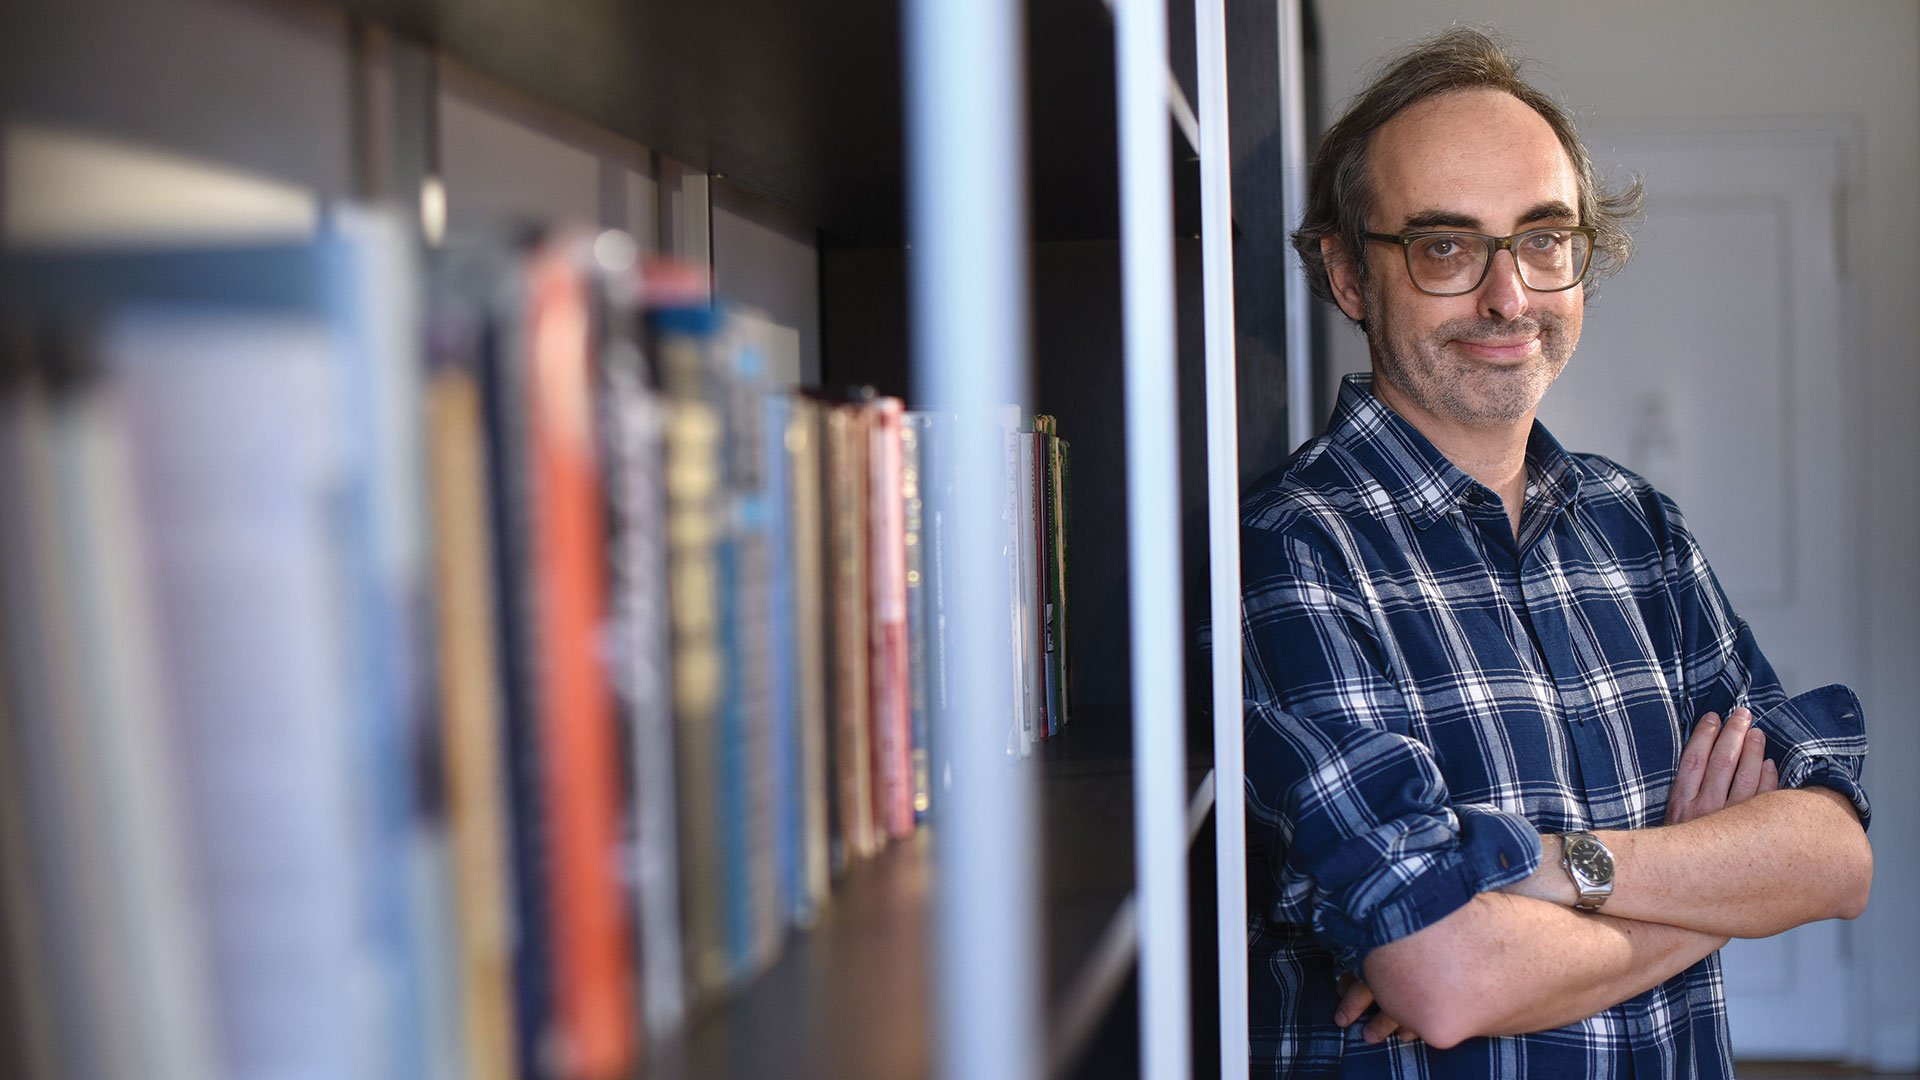 Gary Shteyngart by bookshelf